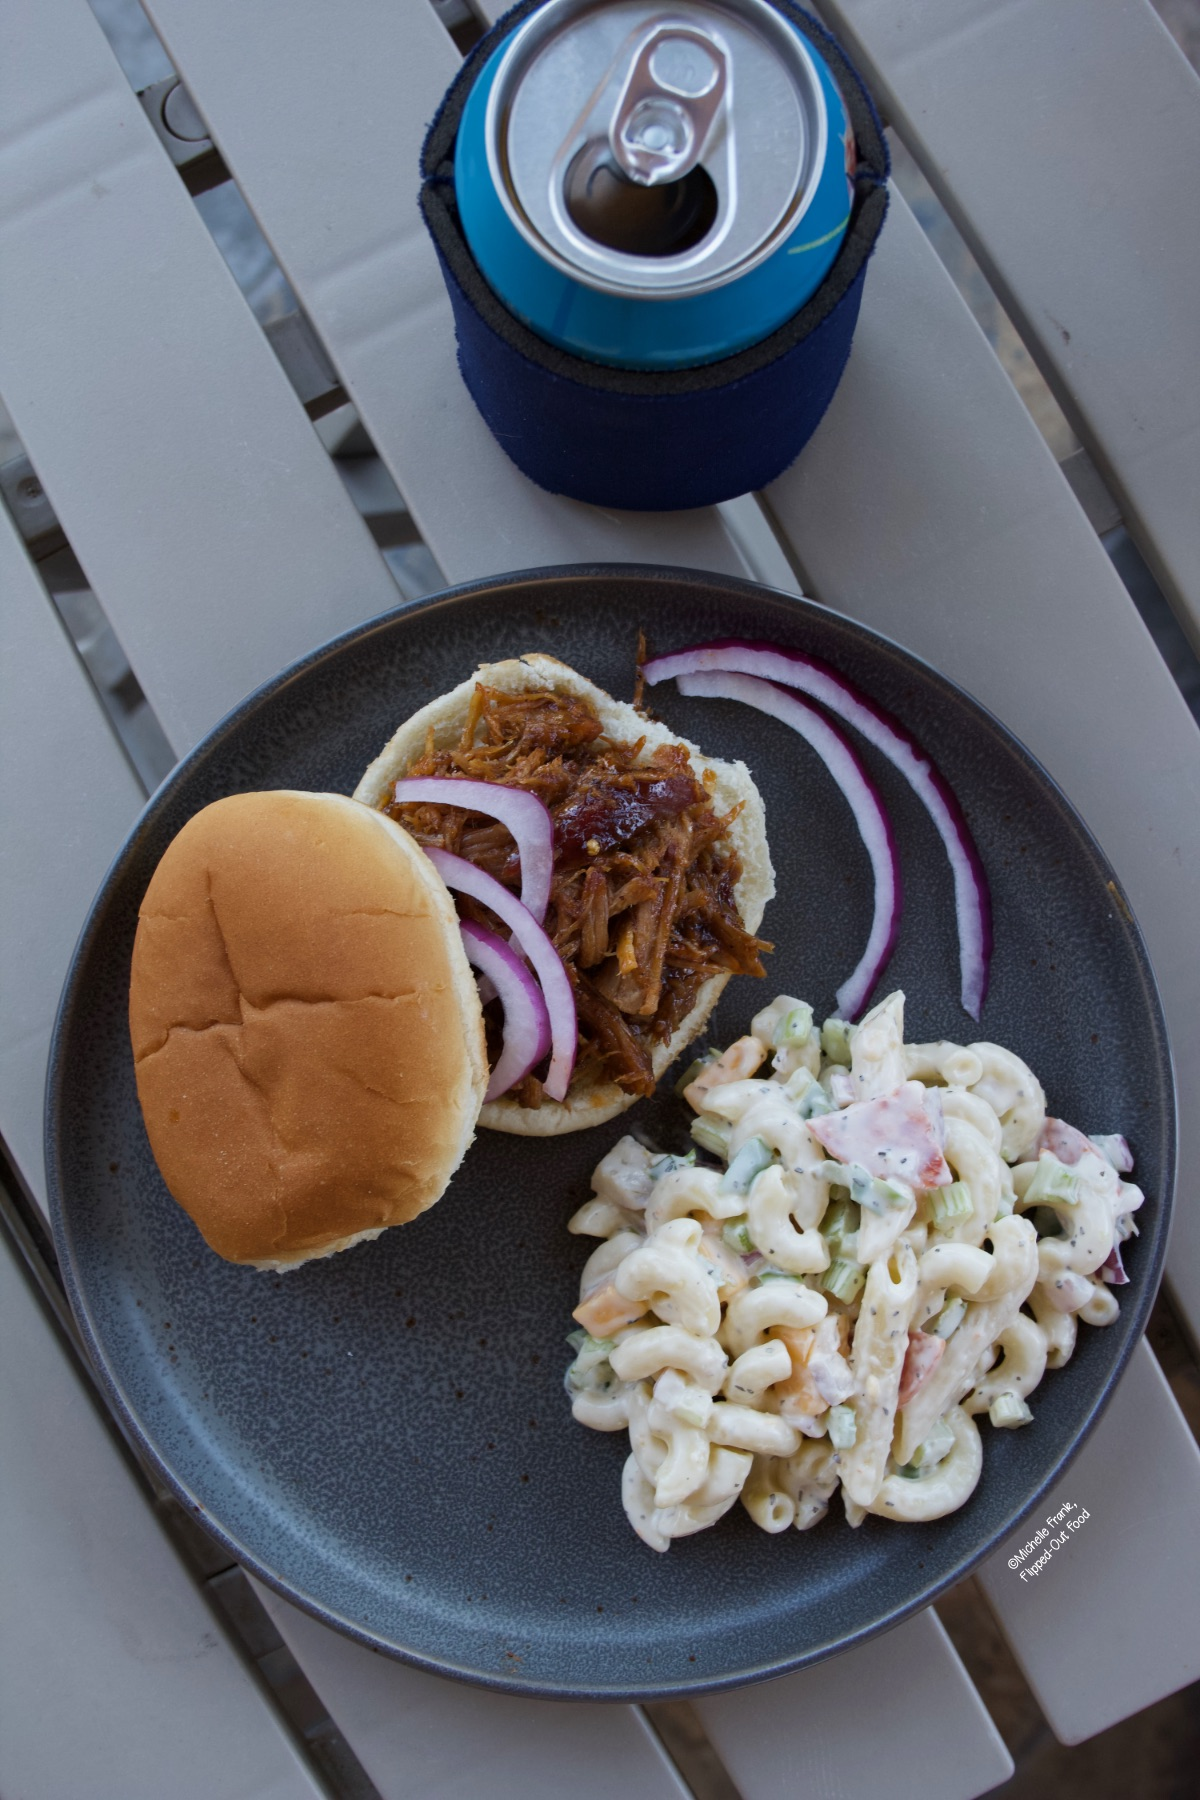 Overhead image of a serving of pasta salad with a pulled pork sandwich on a gray plate.